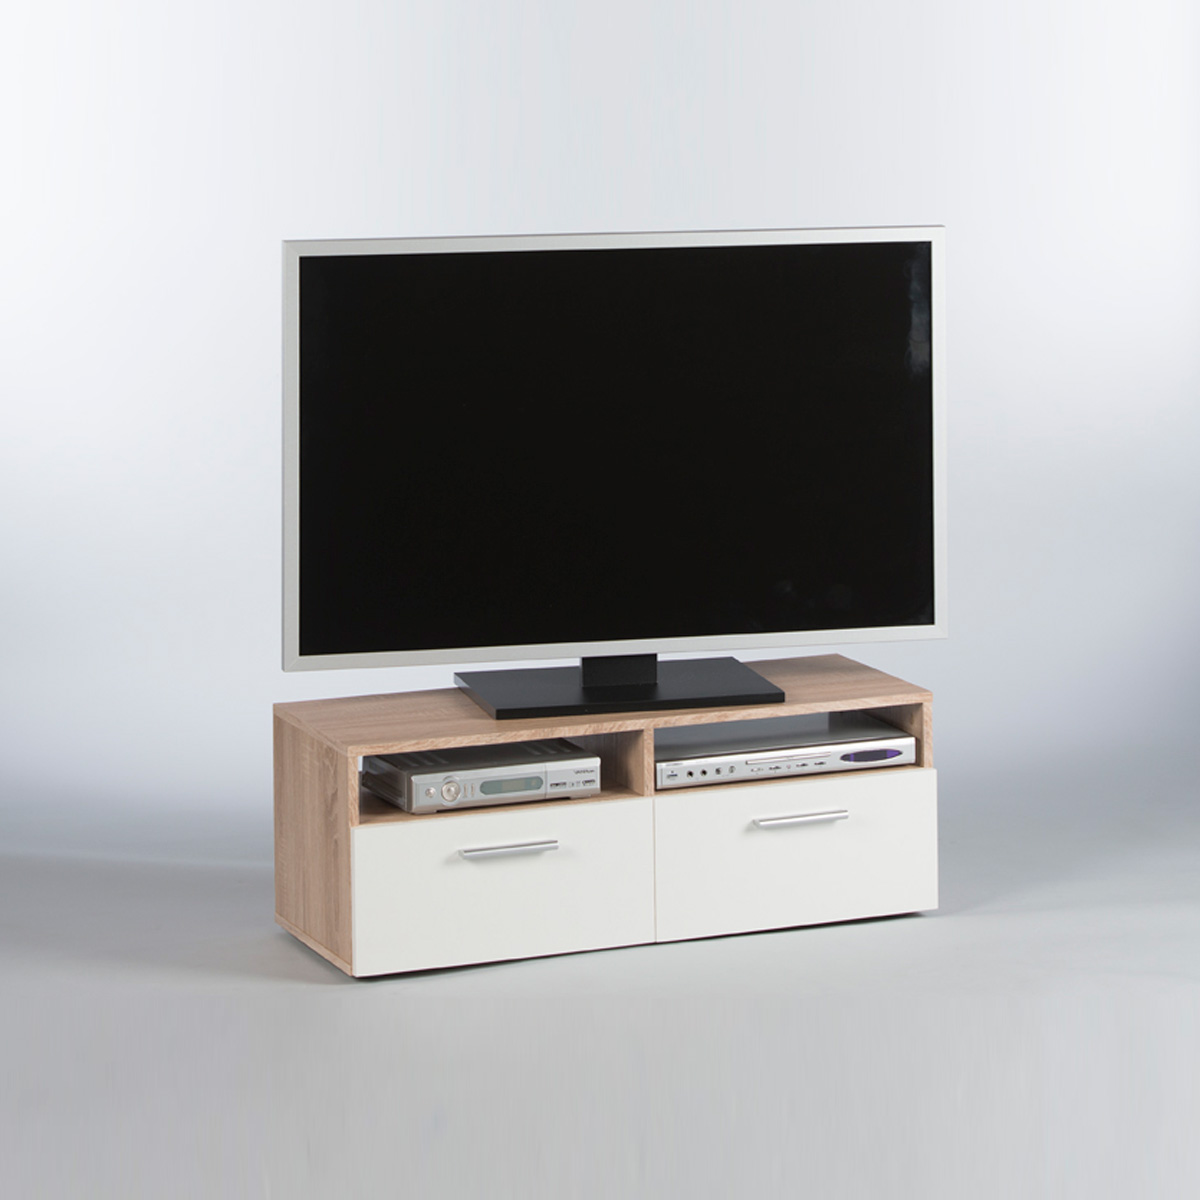 lowboard rana tv board unterschrank fernsehschrank in sonoma eiche und wei 95 eur 49 95. Black Bedroom Furniture Sets. Home Design Ideas